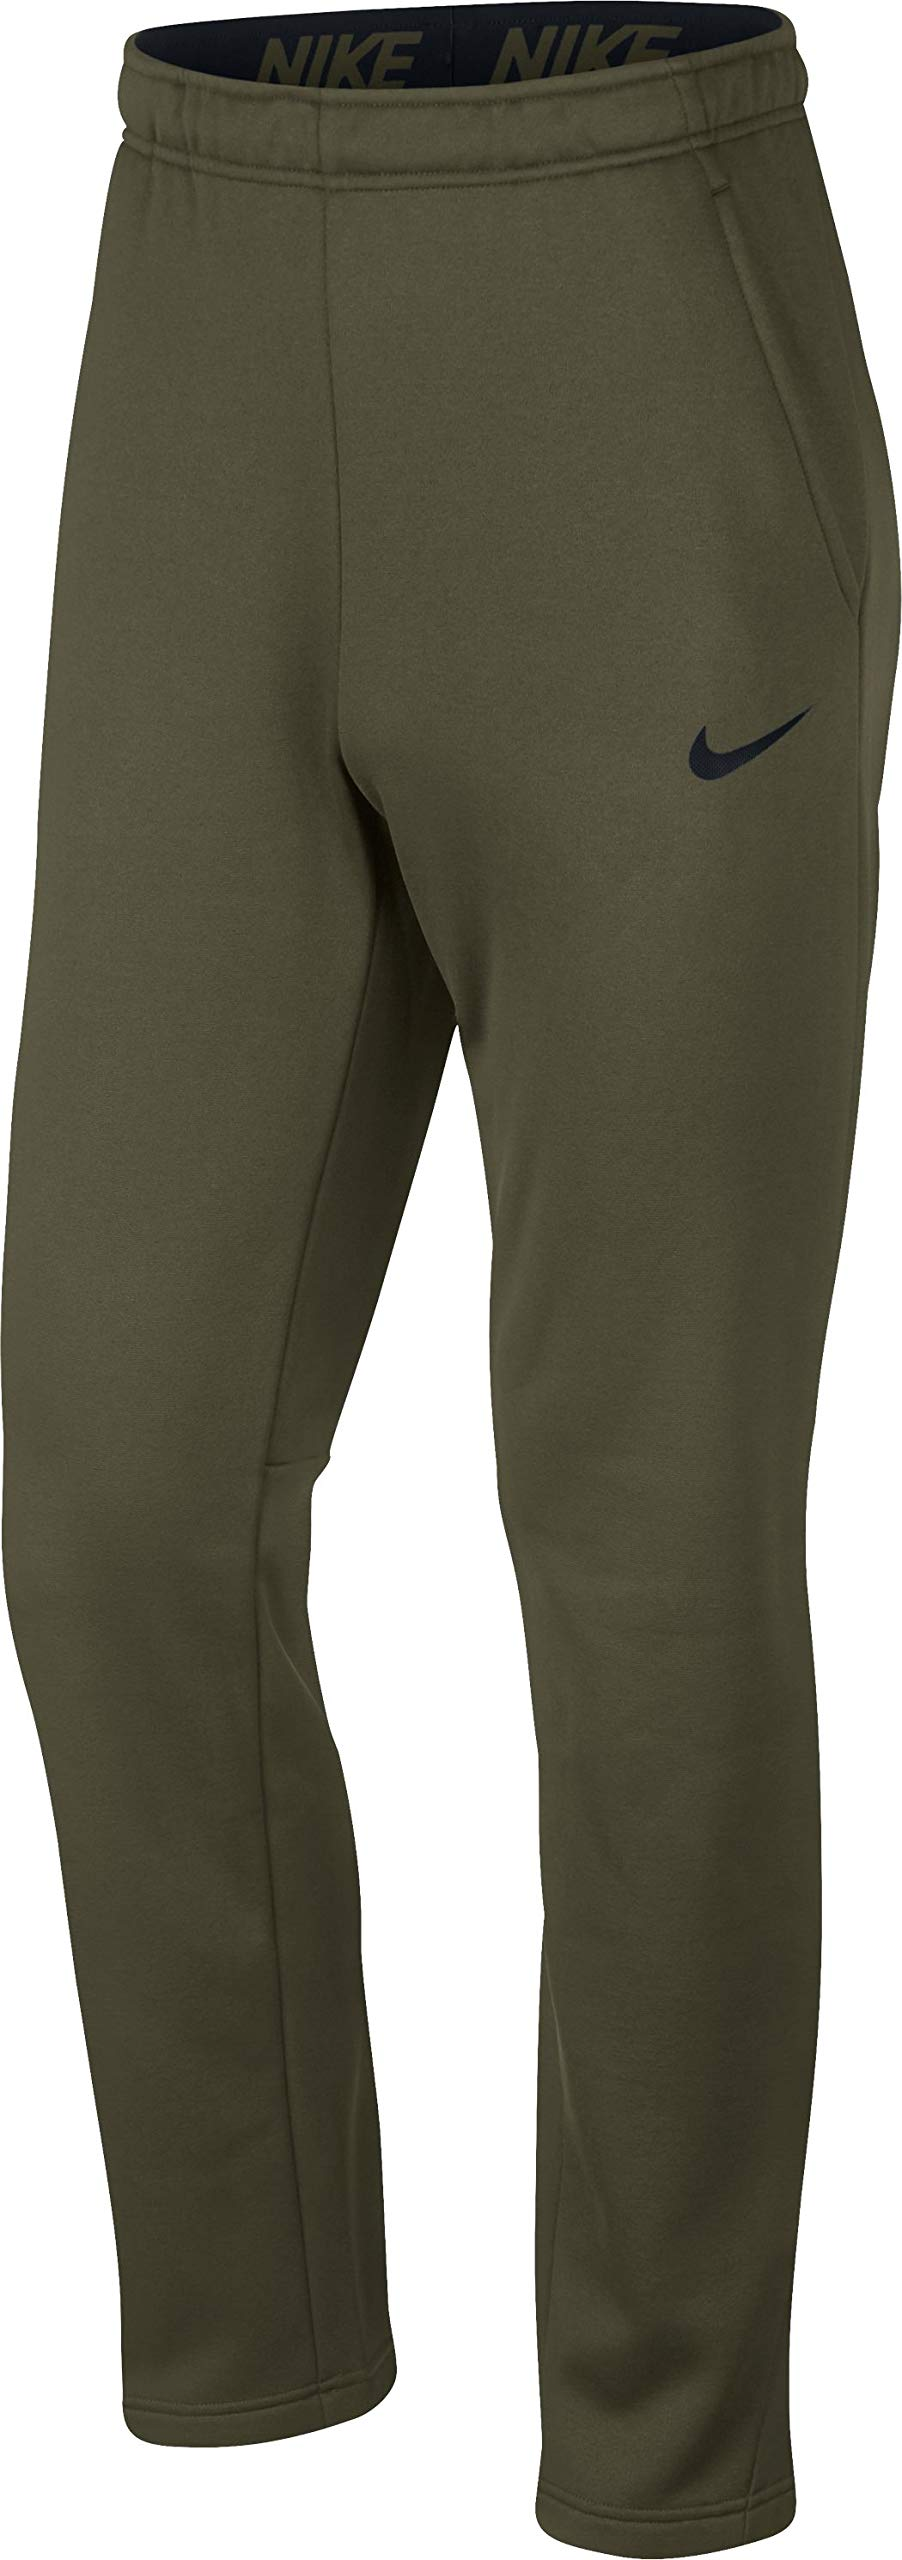 Nike Men's Therma Training Pants, Olive Canvas/Black, Small